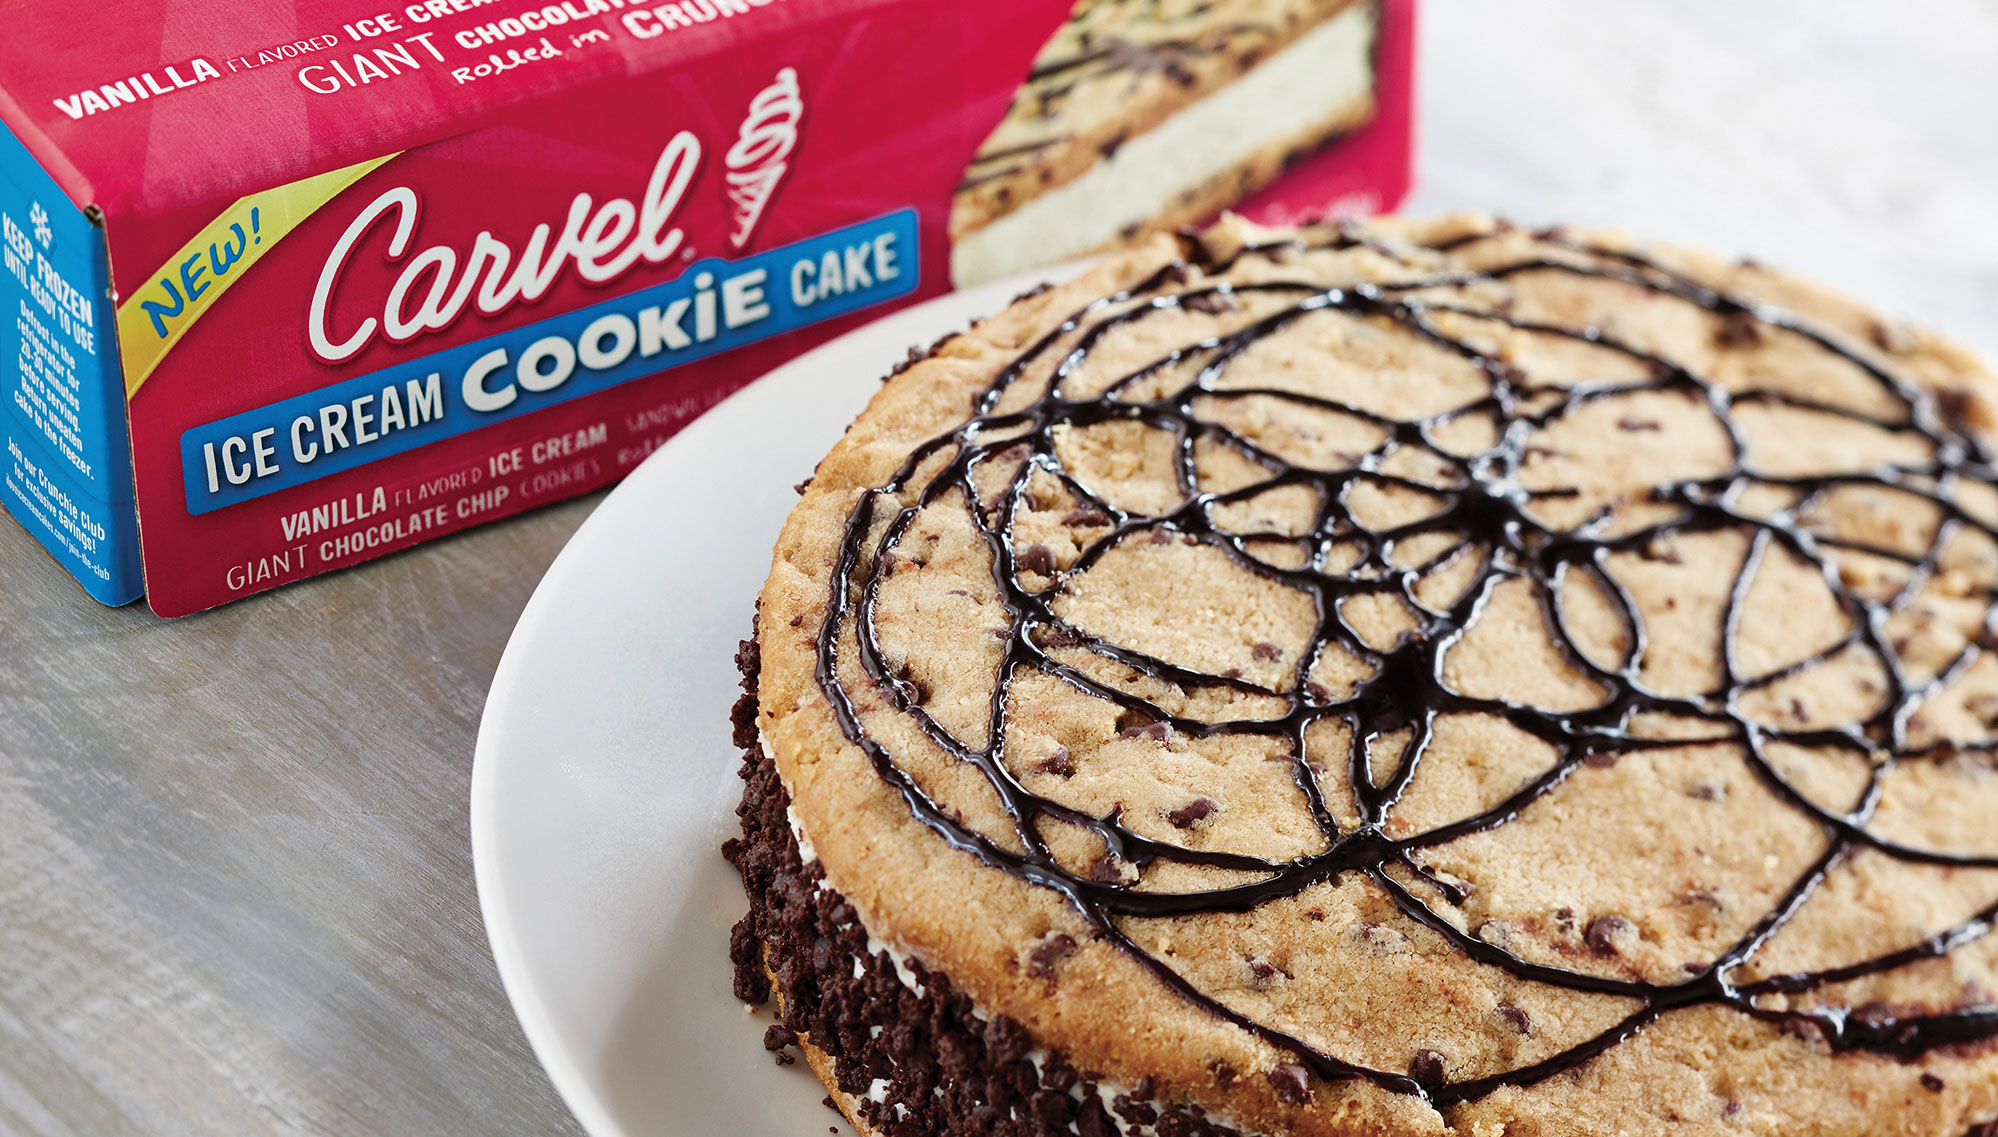 Ice Cream Cookie Cake